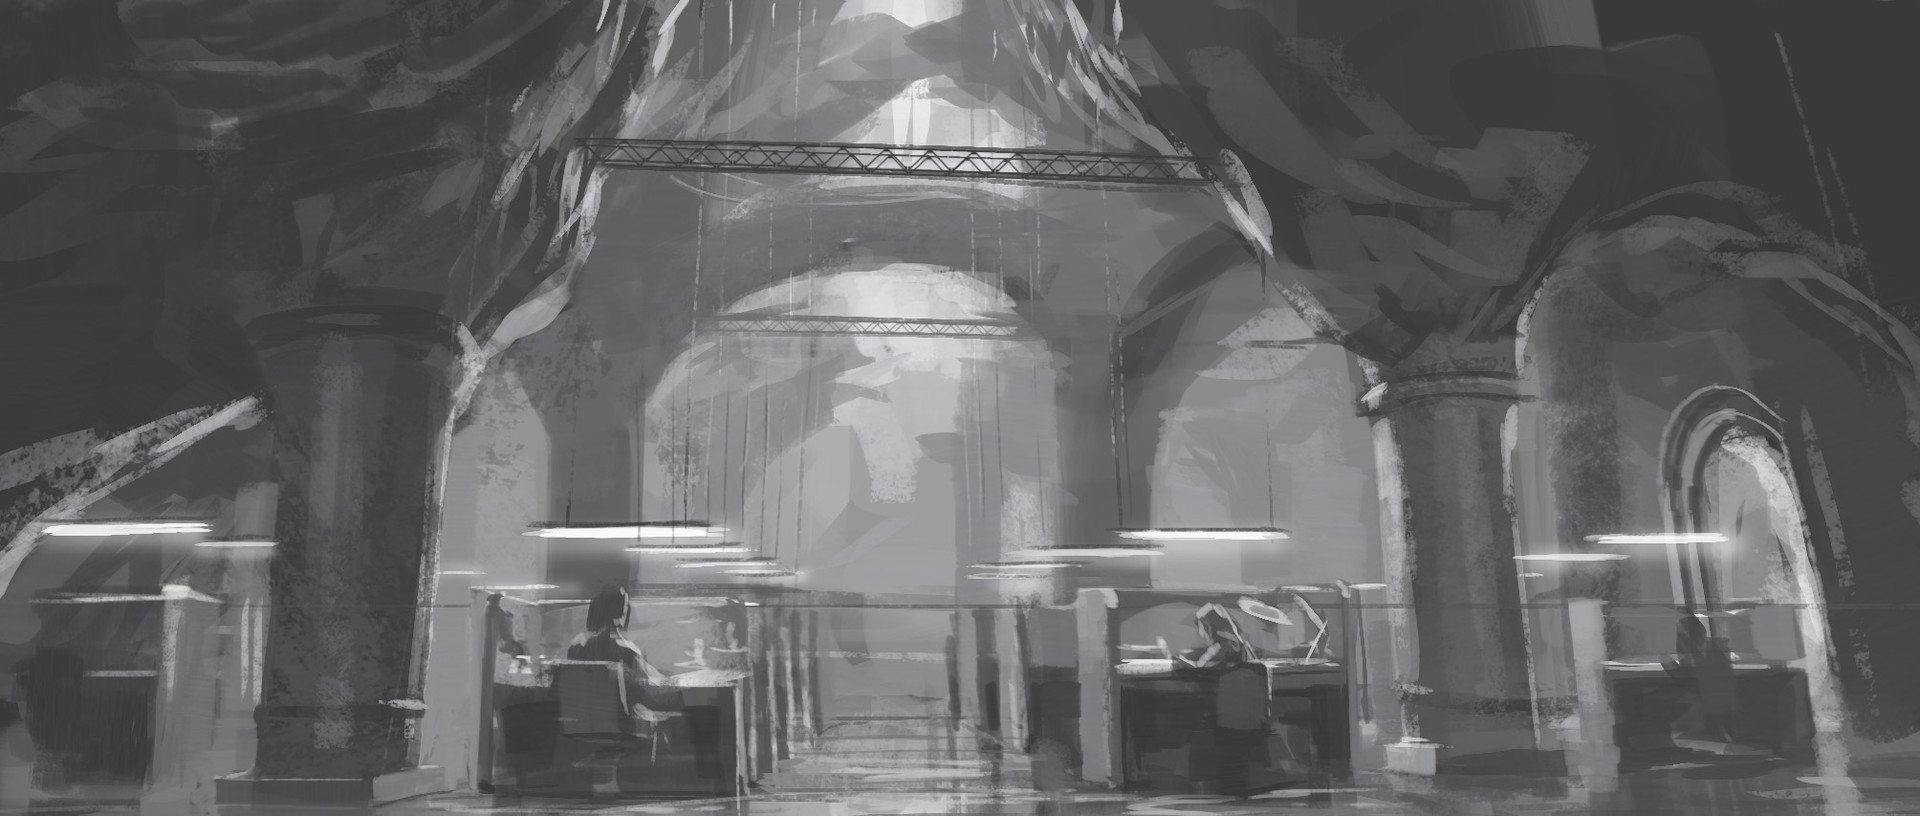 One of several early sketches of what the headquarters could look like, set in an ancient cistern or catacombs.